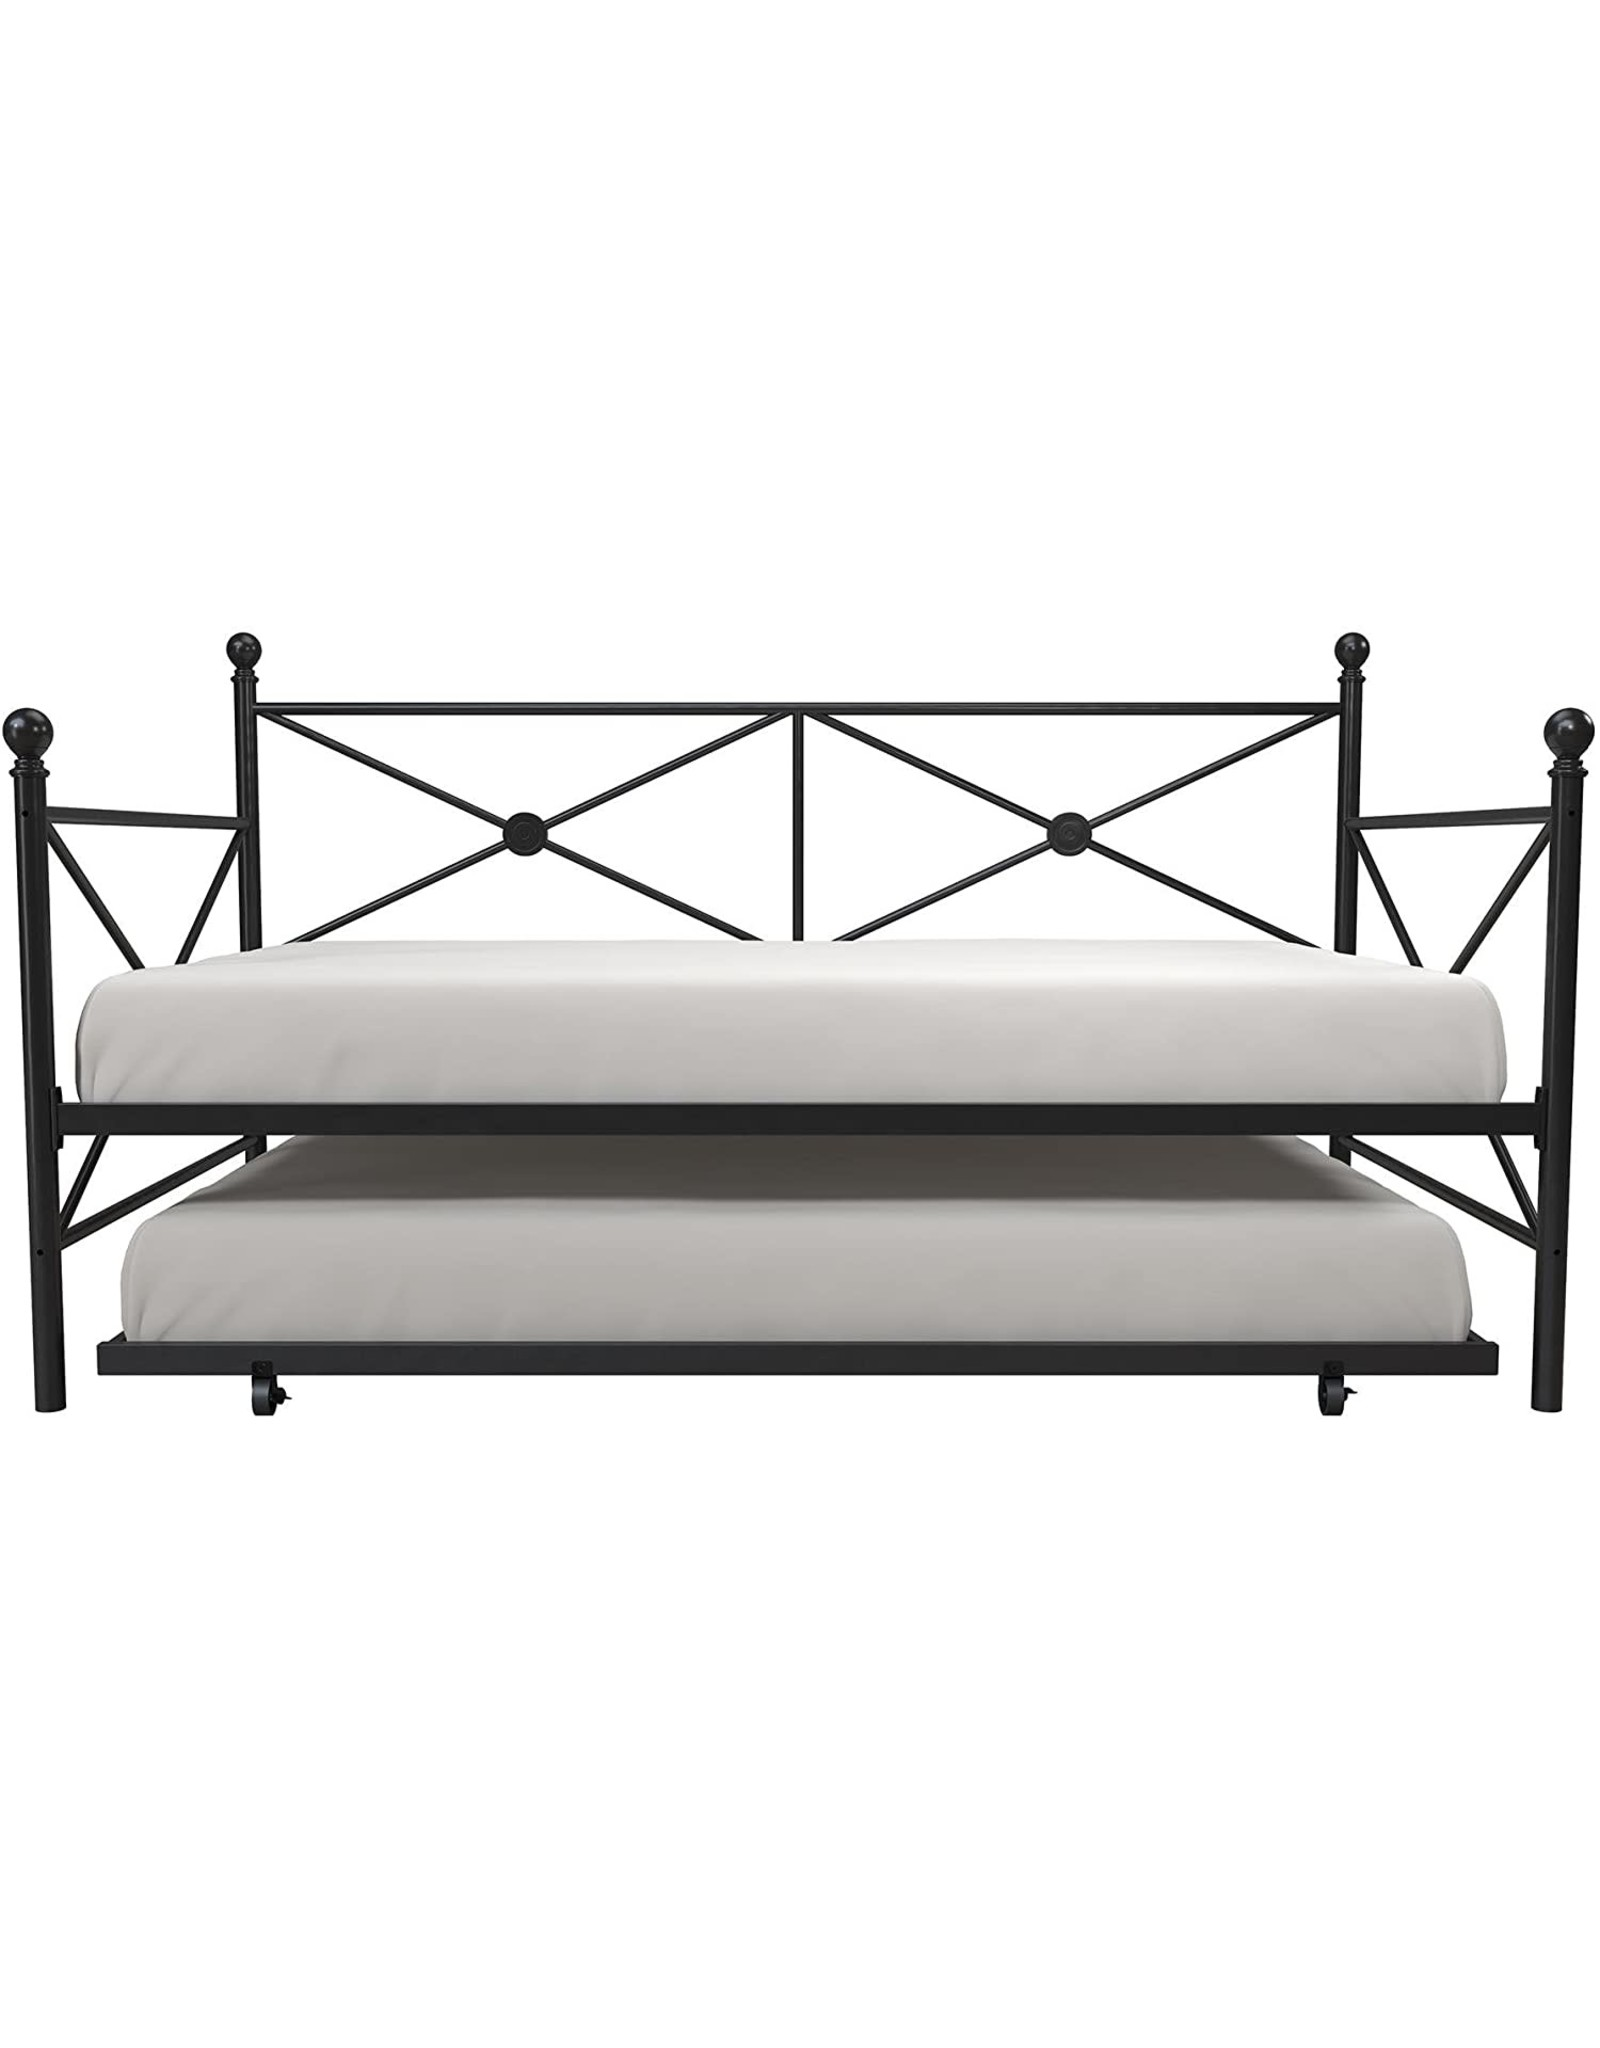 DHP DPH Metal Daybed with Roll Out Trundle, Twin